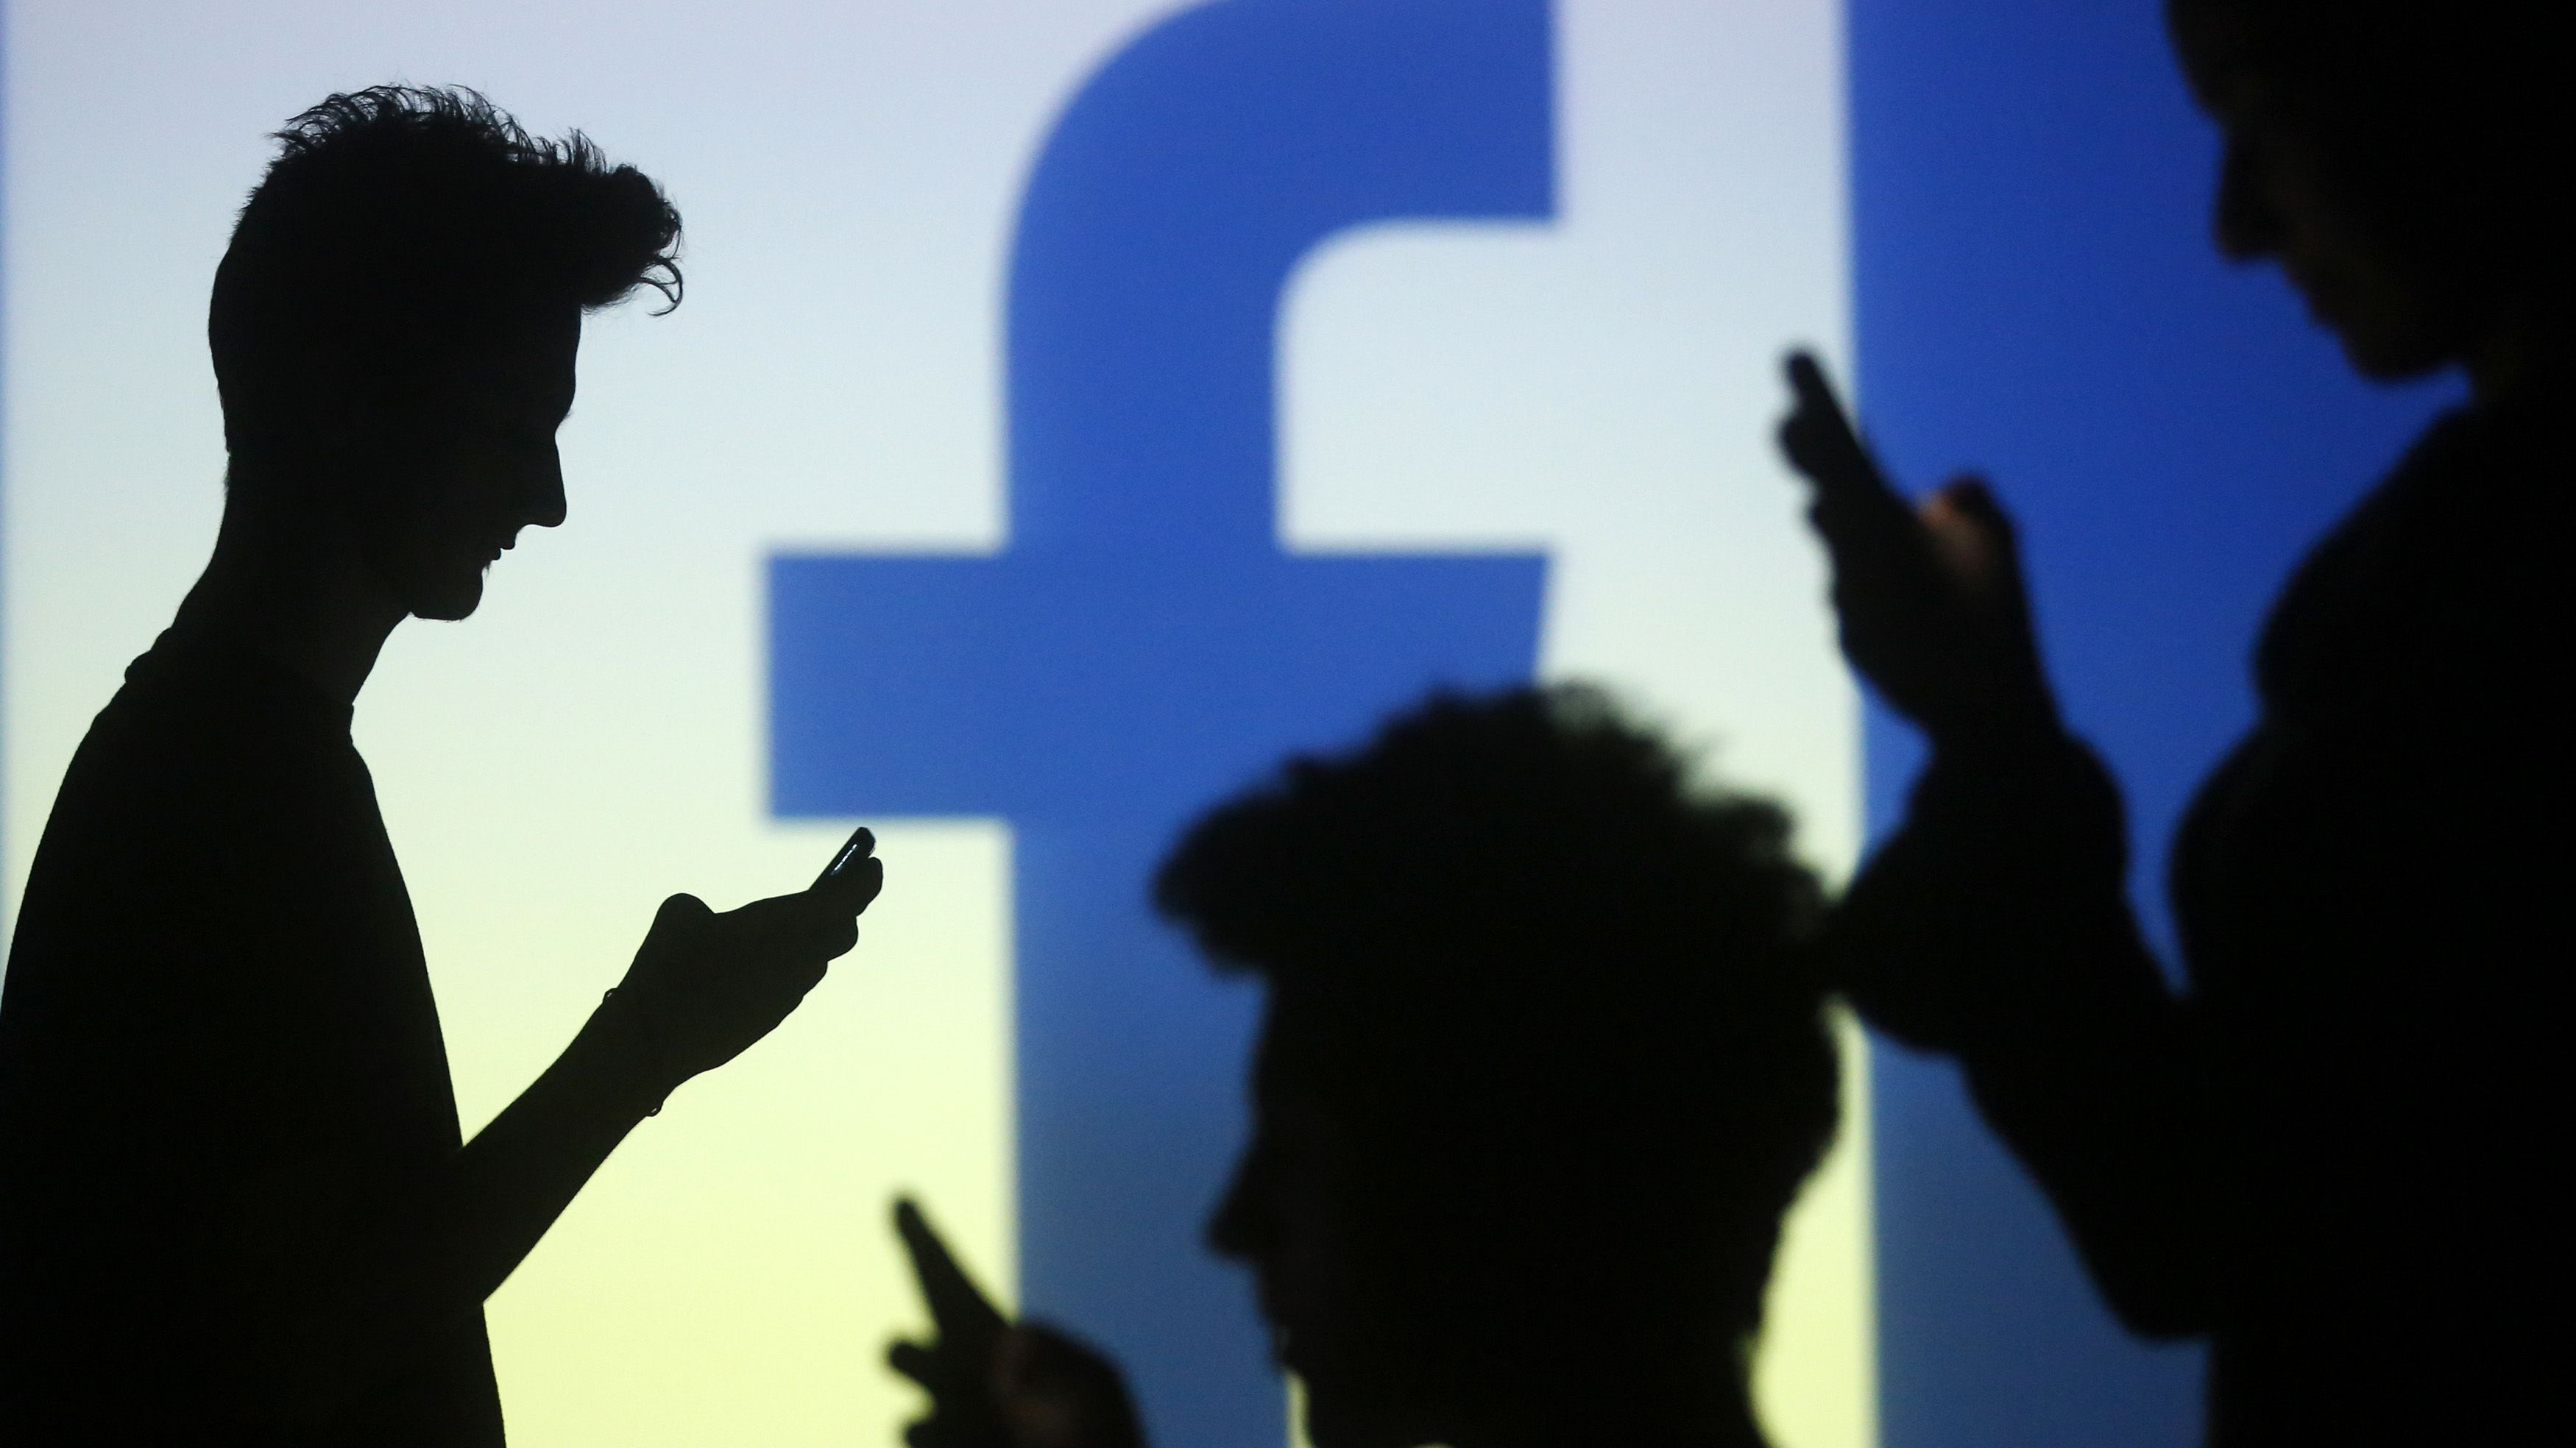 People are silhouetted as they pose with mobile devices in front of a screen projected with a Facebook logo, in this picture illustration taken in Zenica October 29, 2014. Facebook Inc warned on Tuesday of a dramatic increase in spending in 2015 and projected a slowdown in revenue growth this quarter, slicing a tenth off its market value. Facebook shares fell 7.7 percent in premarket trading the day after the social network announced an increase in spending in 2015 and projected a slowdown in revenue growth this quarter. REUTERS/Dado Ruvic (BOSNIA AND HERZEGOVINA - Tags: BUSINESS SCIENCE TECHNOLOGY BUSINESS LOGO) - RTR4C0VB